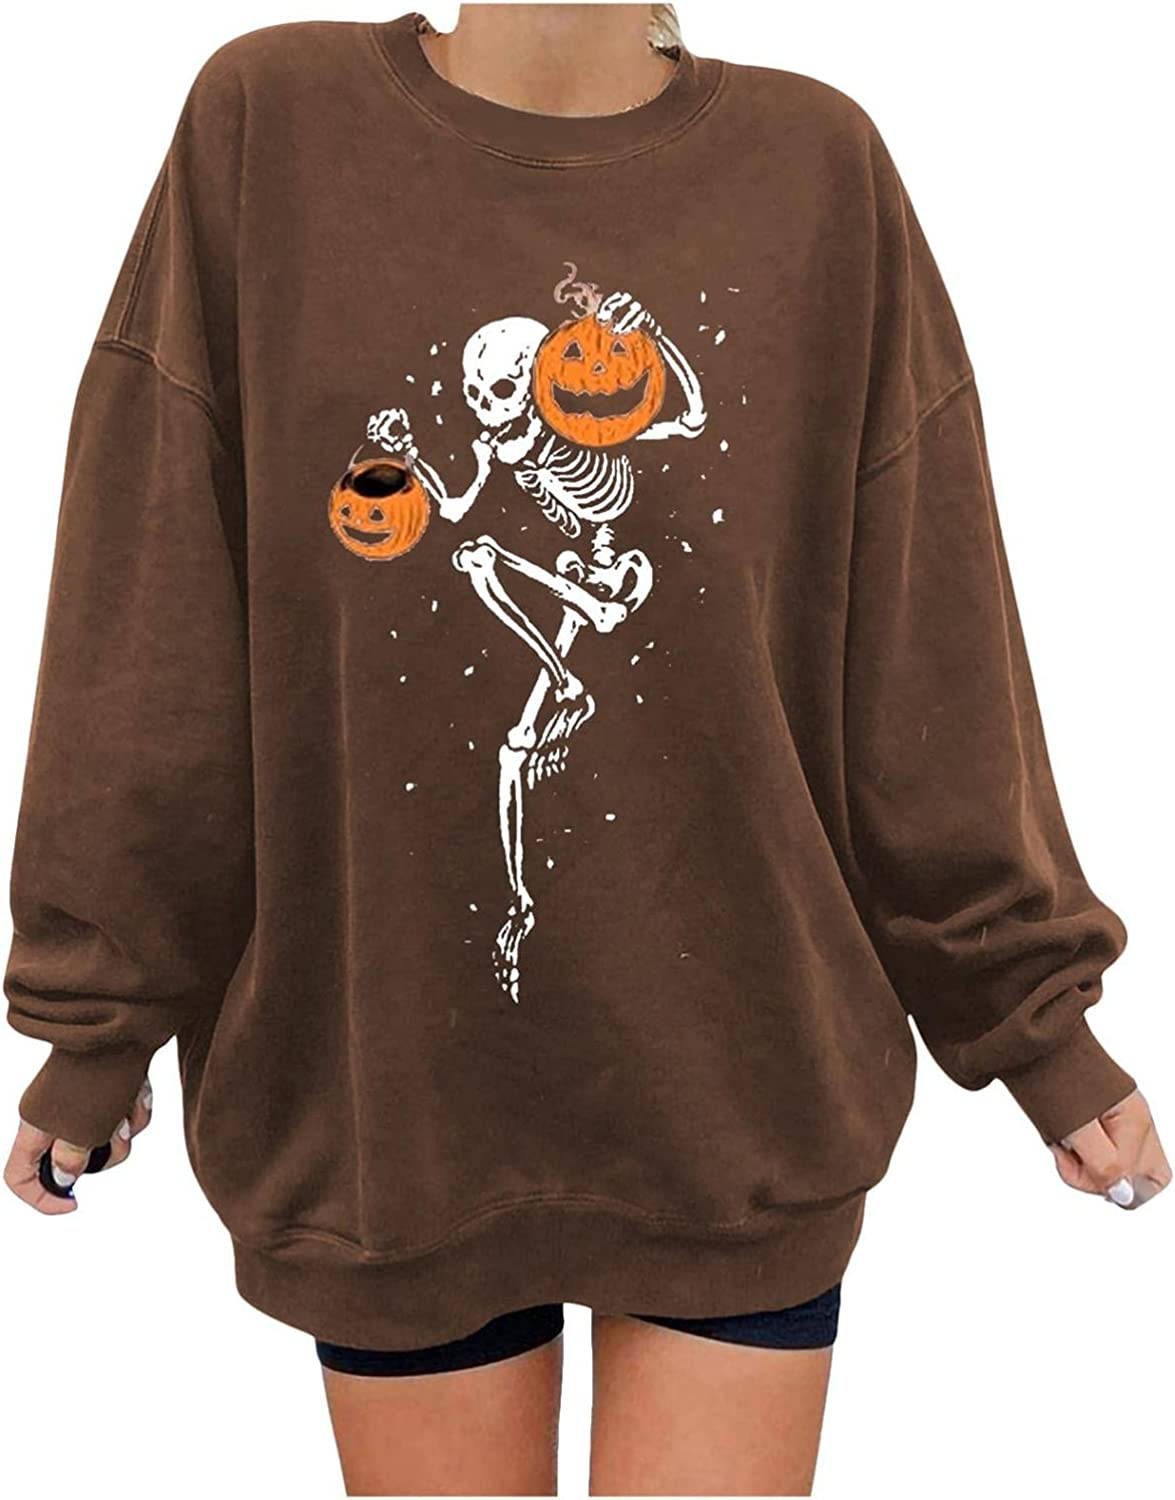 Oversized Sweatshirt for Women Selling Fashion Super intense SALE Vintage Print Cre Casual